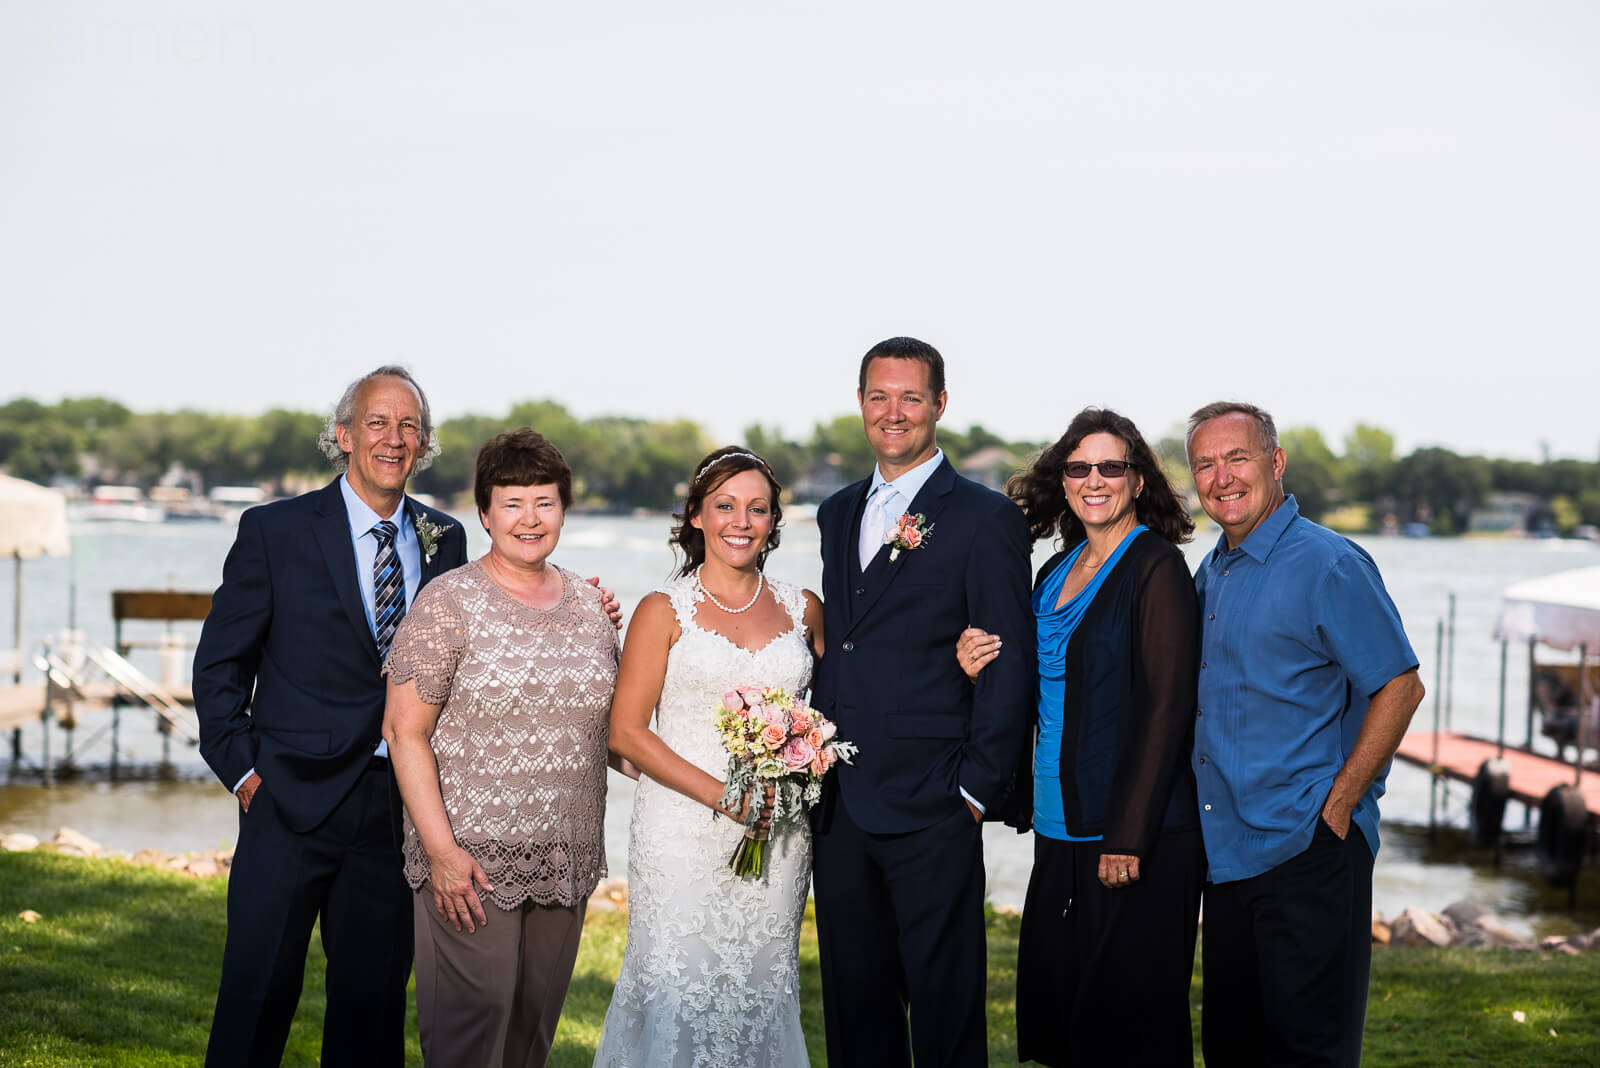 lumen photography, adventurous wedding photography, iowa wedding photography,, minneapolis wedding photographer